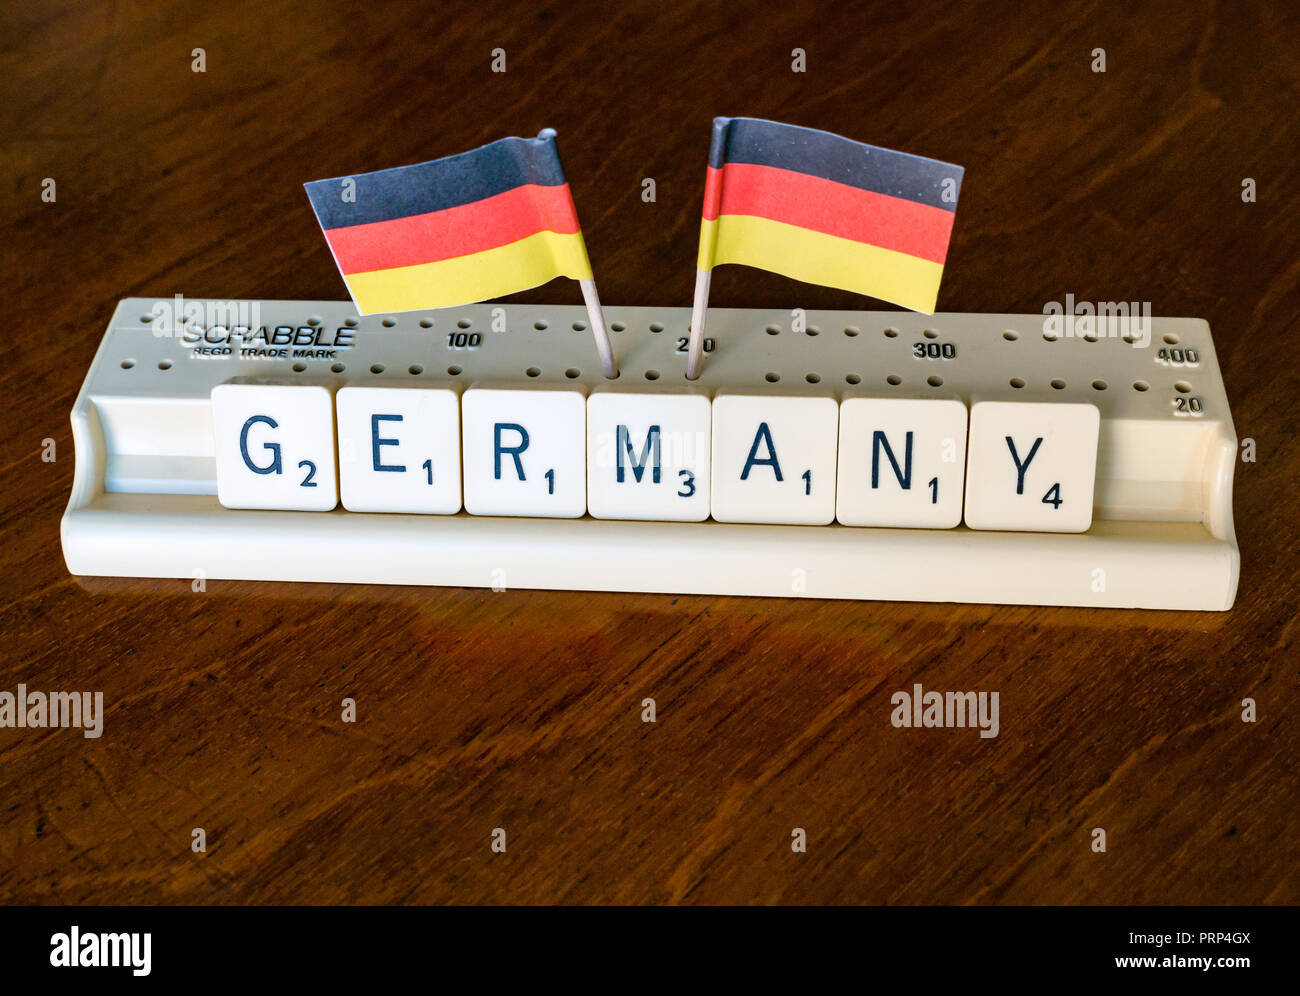 Scrabble letters spelling Germany in Scrabble tray with